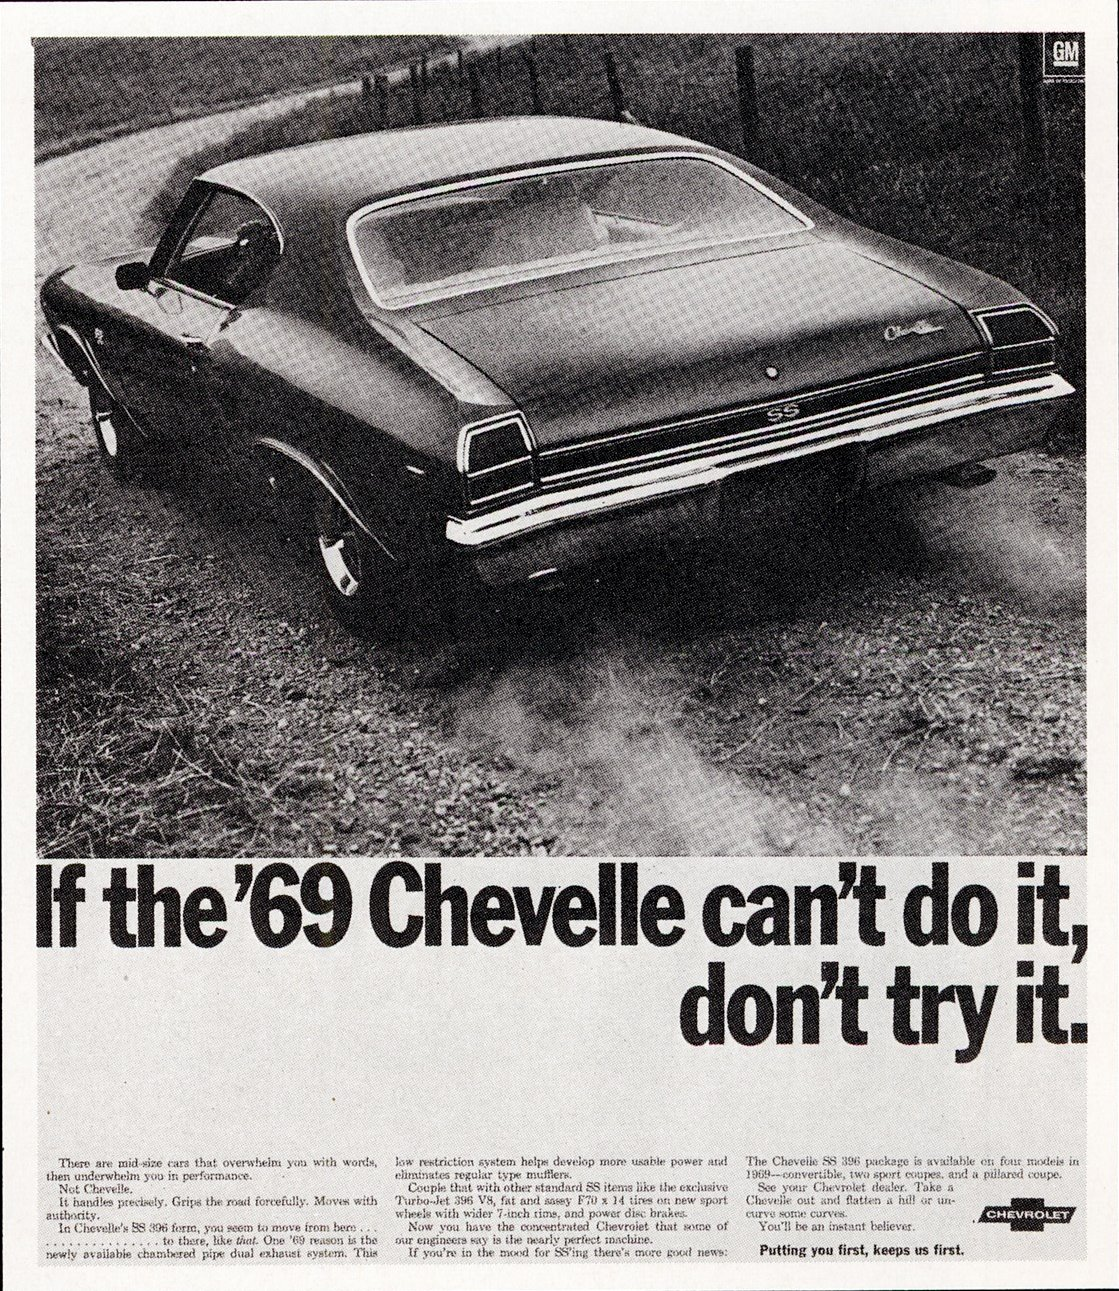 ['69+Chevelle+NP+-don't+try+it]